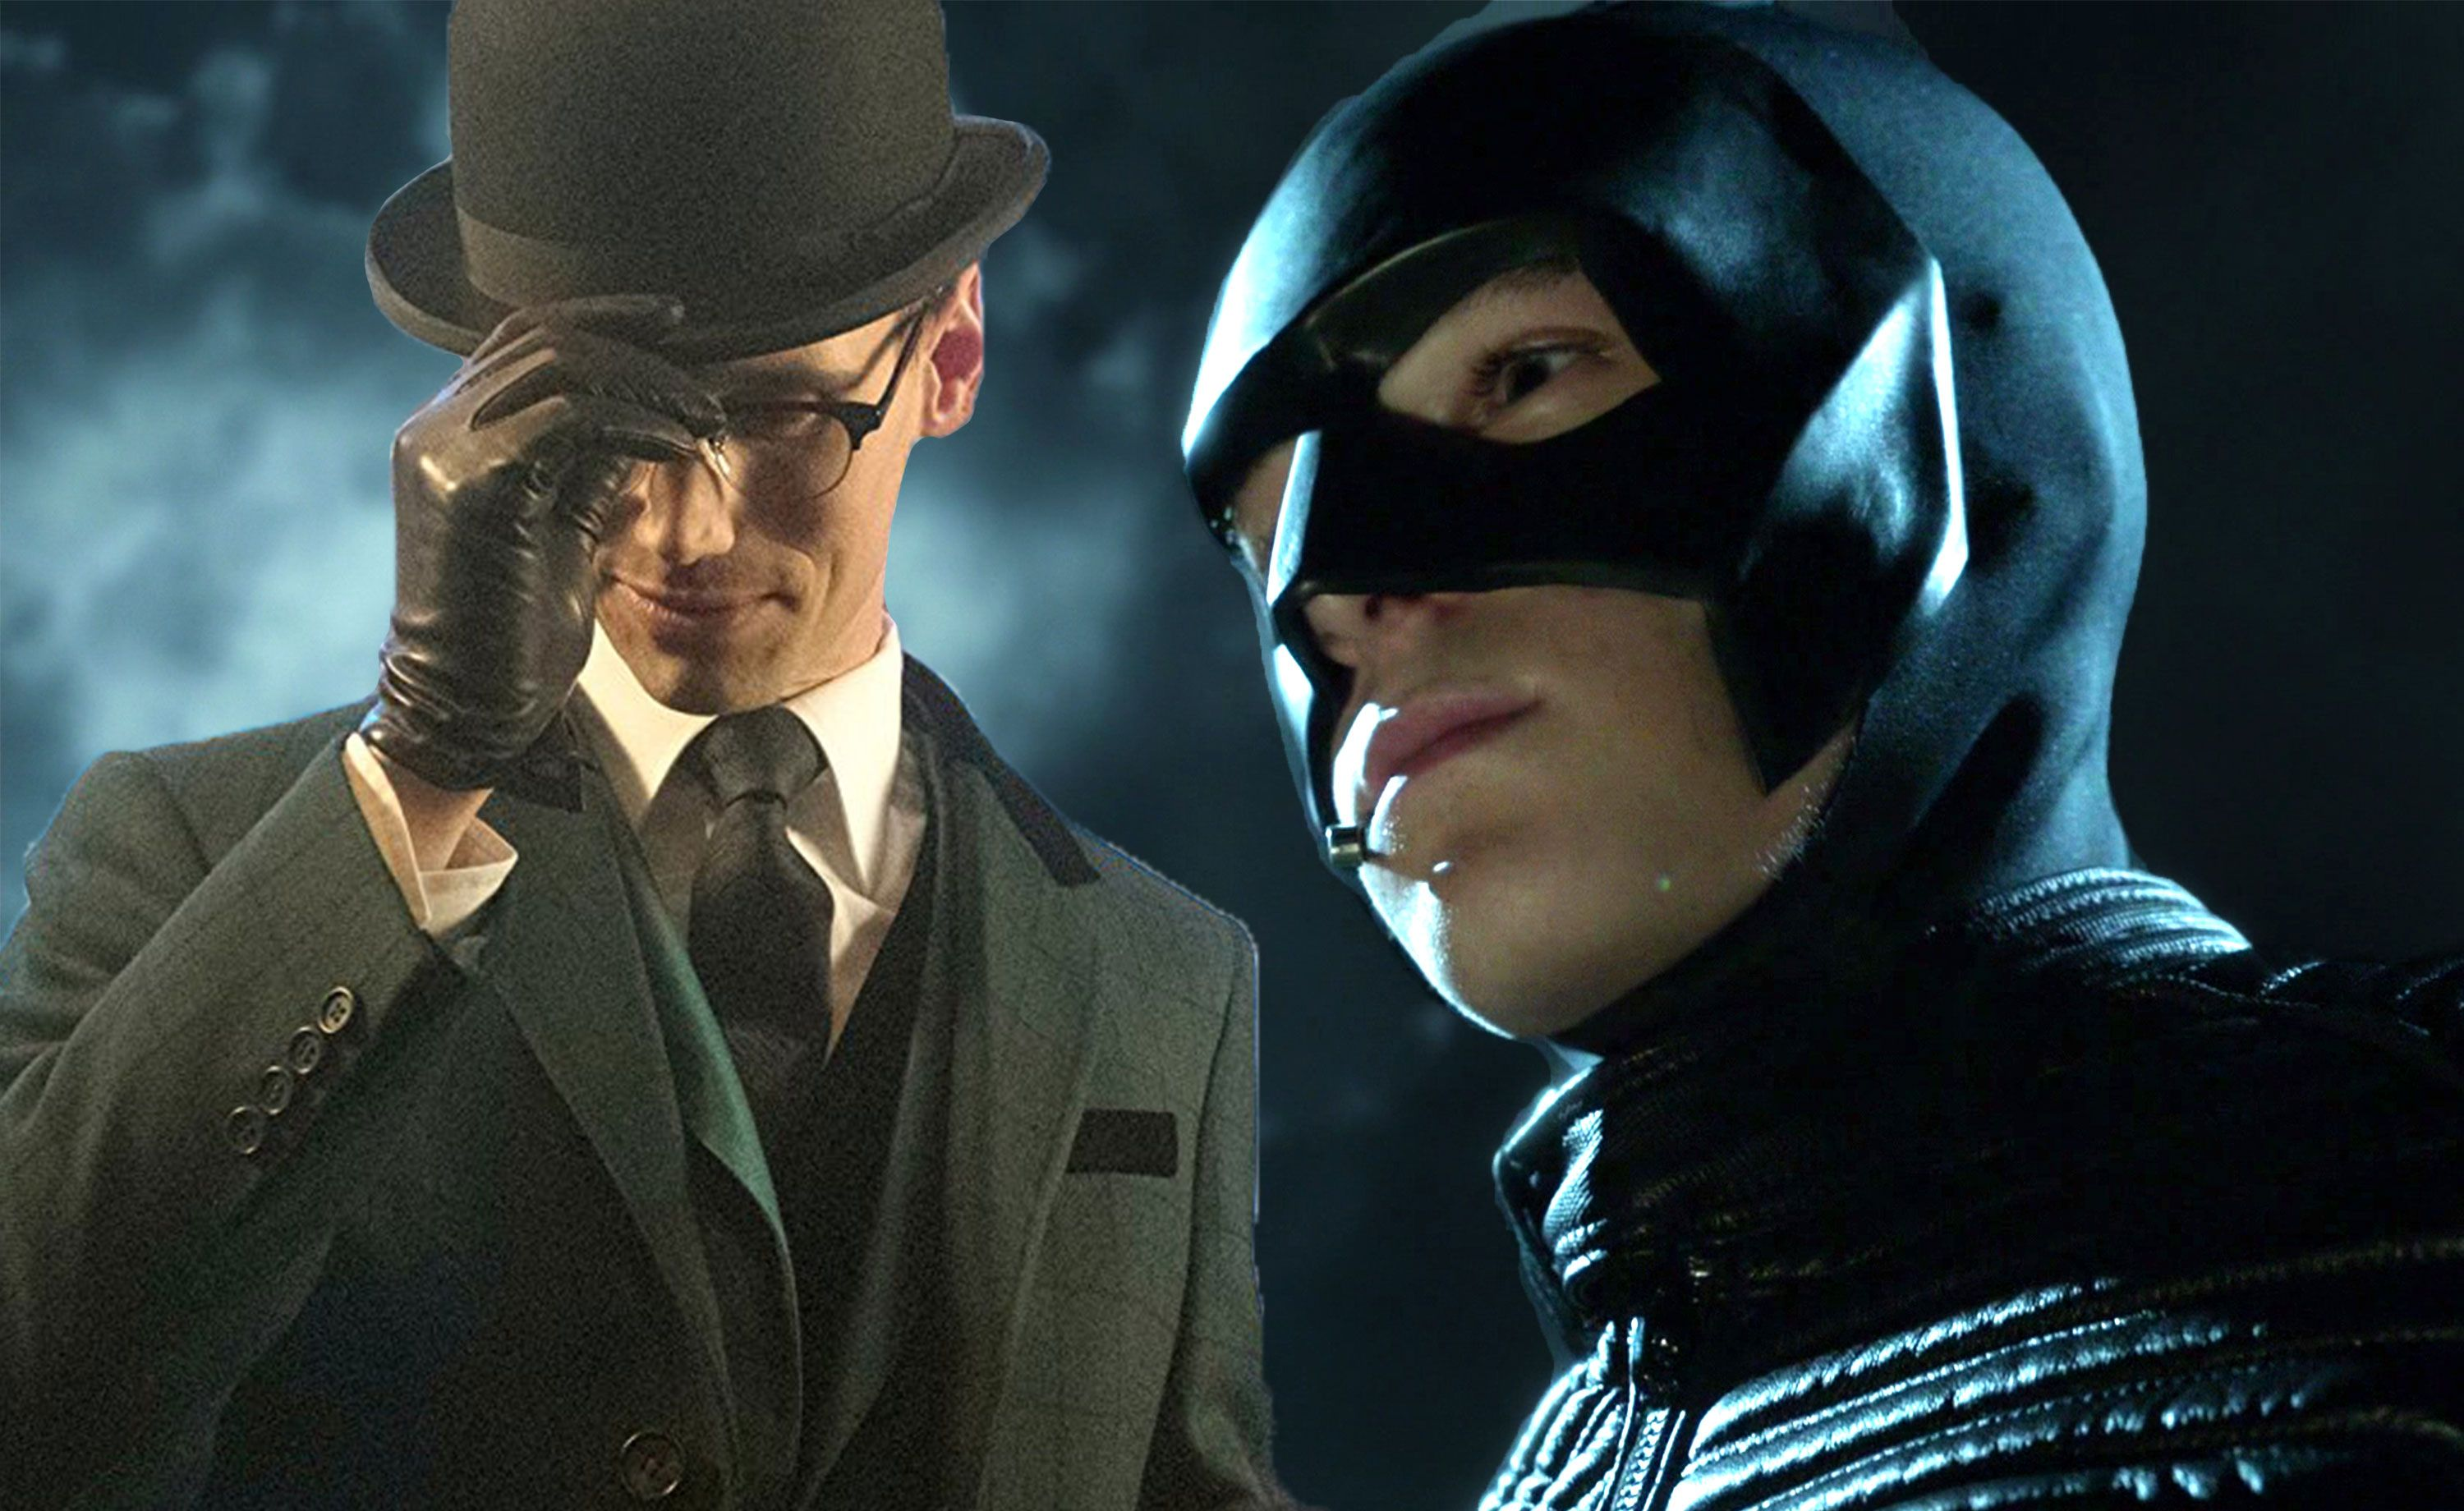 Gotham season 5: Release date, plot, cast, Netflix and